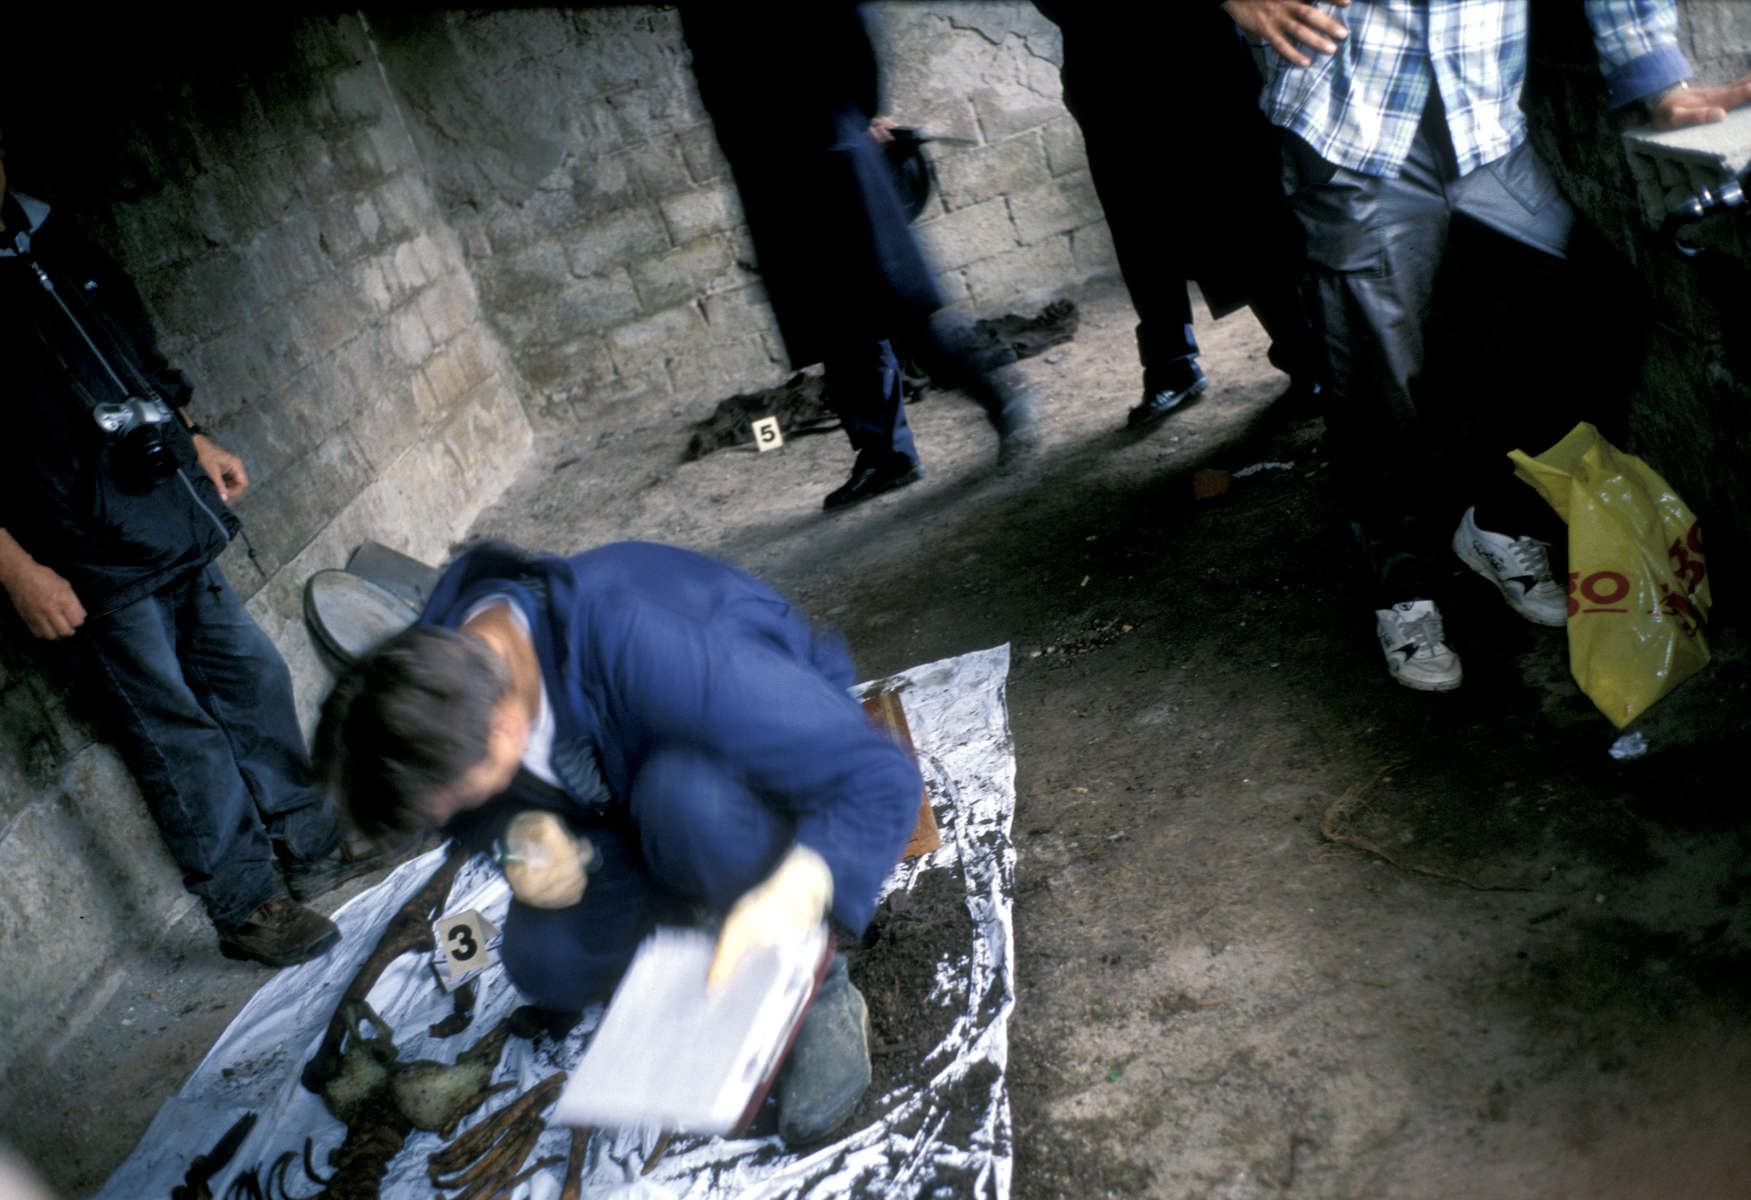 Police crime scene technicians examine the remains of a Muslim man killed in May 1992 and exhumed eight years later. Every exhumation is attended by crime scene experts who send their reports to the war crimes tribunal at The Hague for use in possible prosecution there. October 2000.